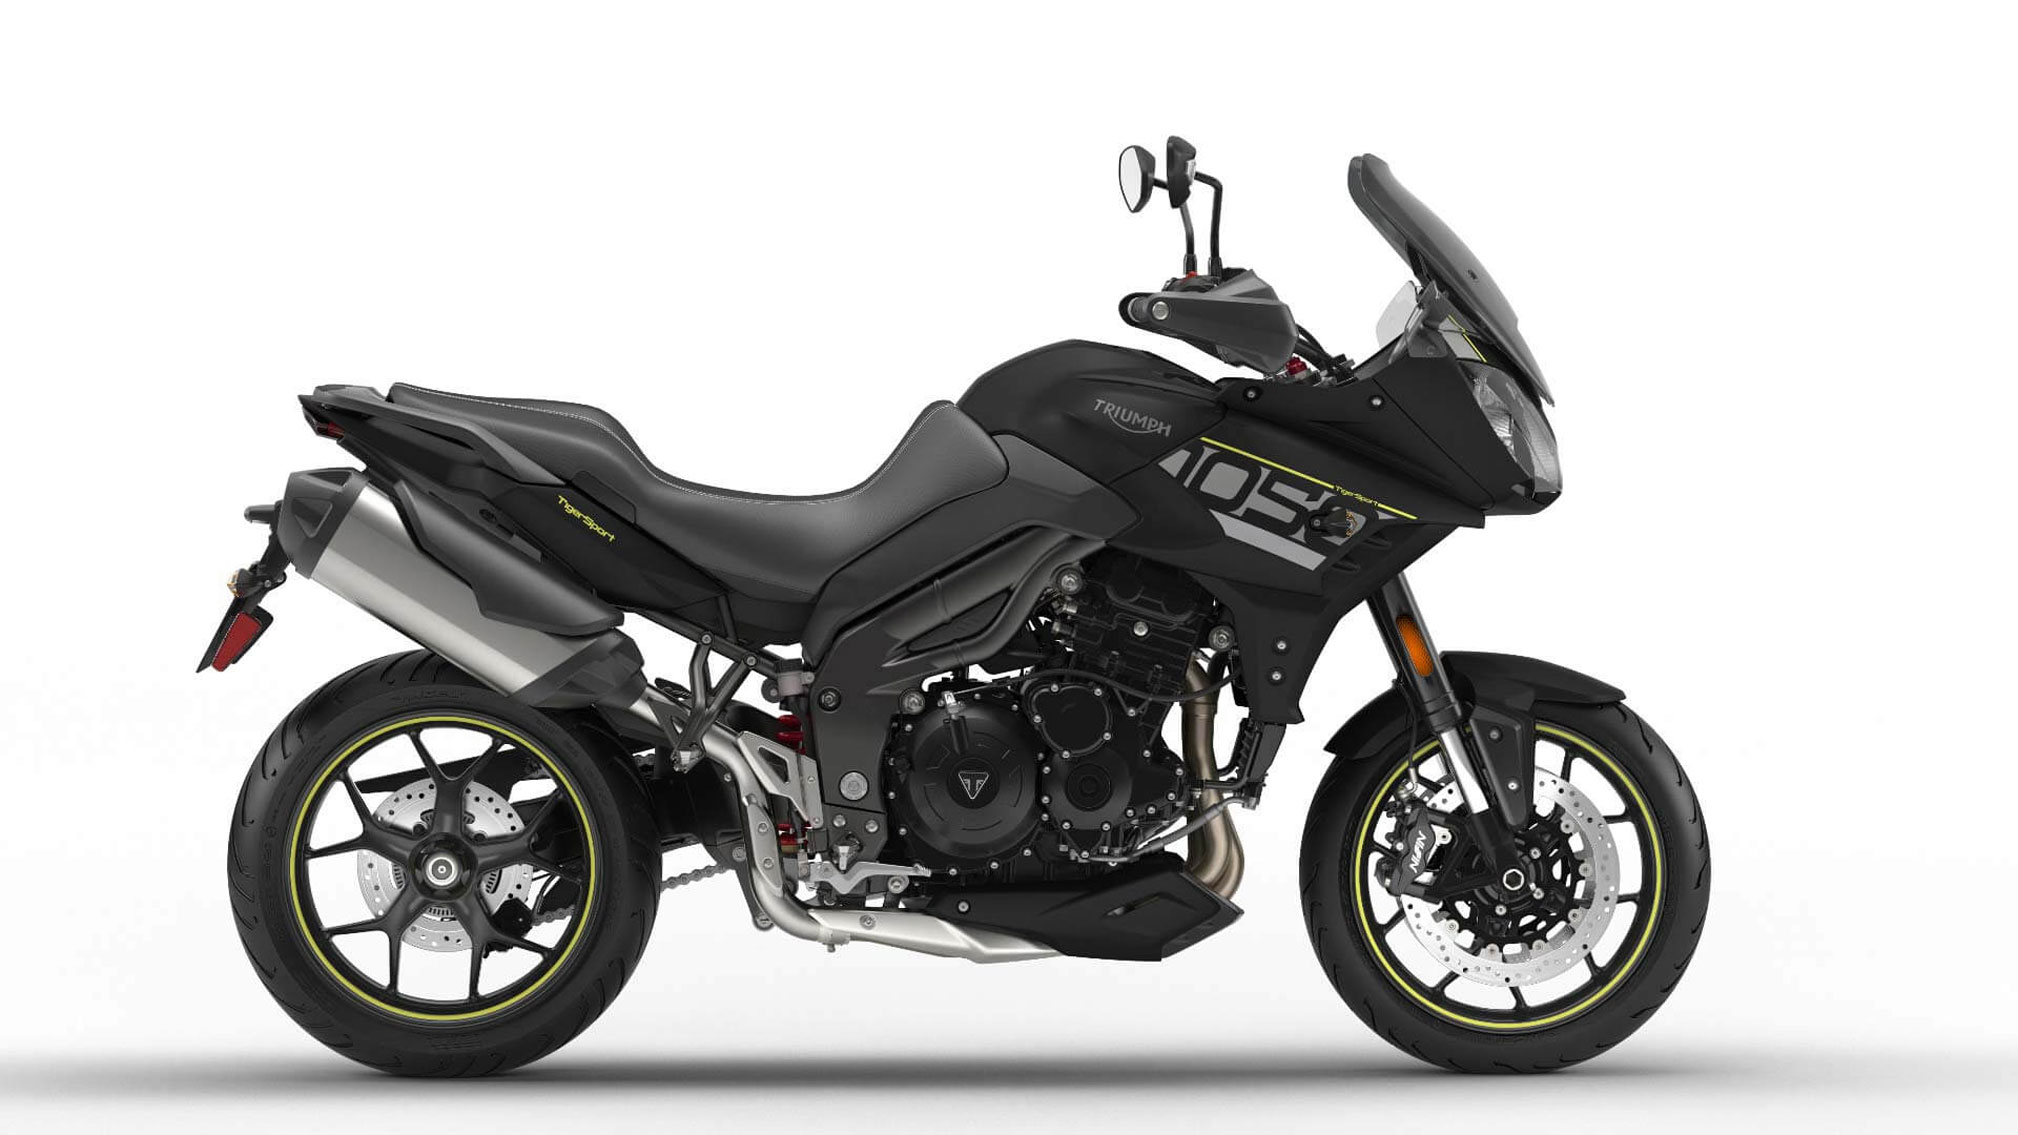 2018 Triumph Tiger Sport Review - TotalMotorcycle